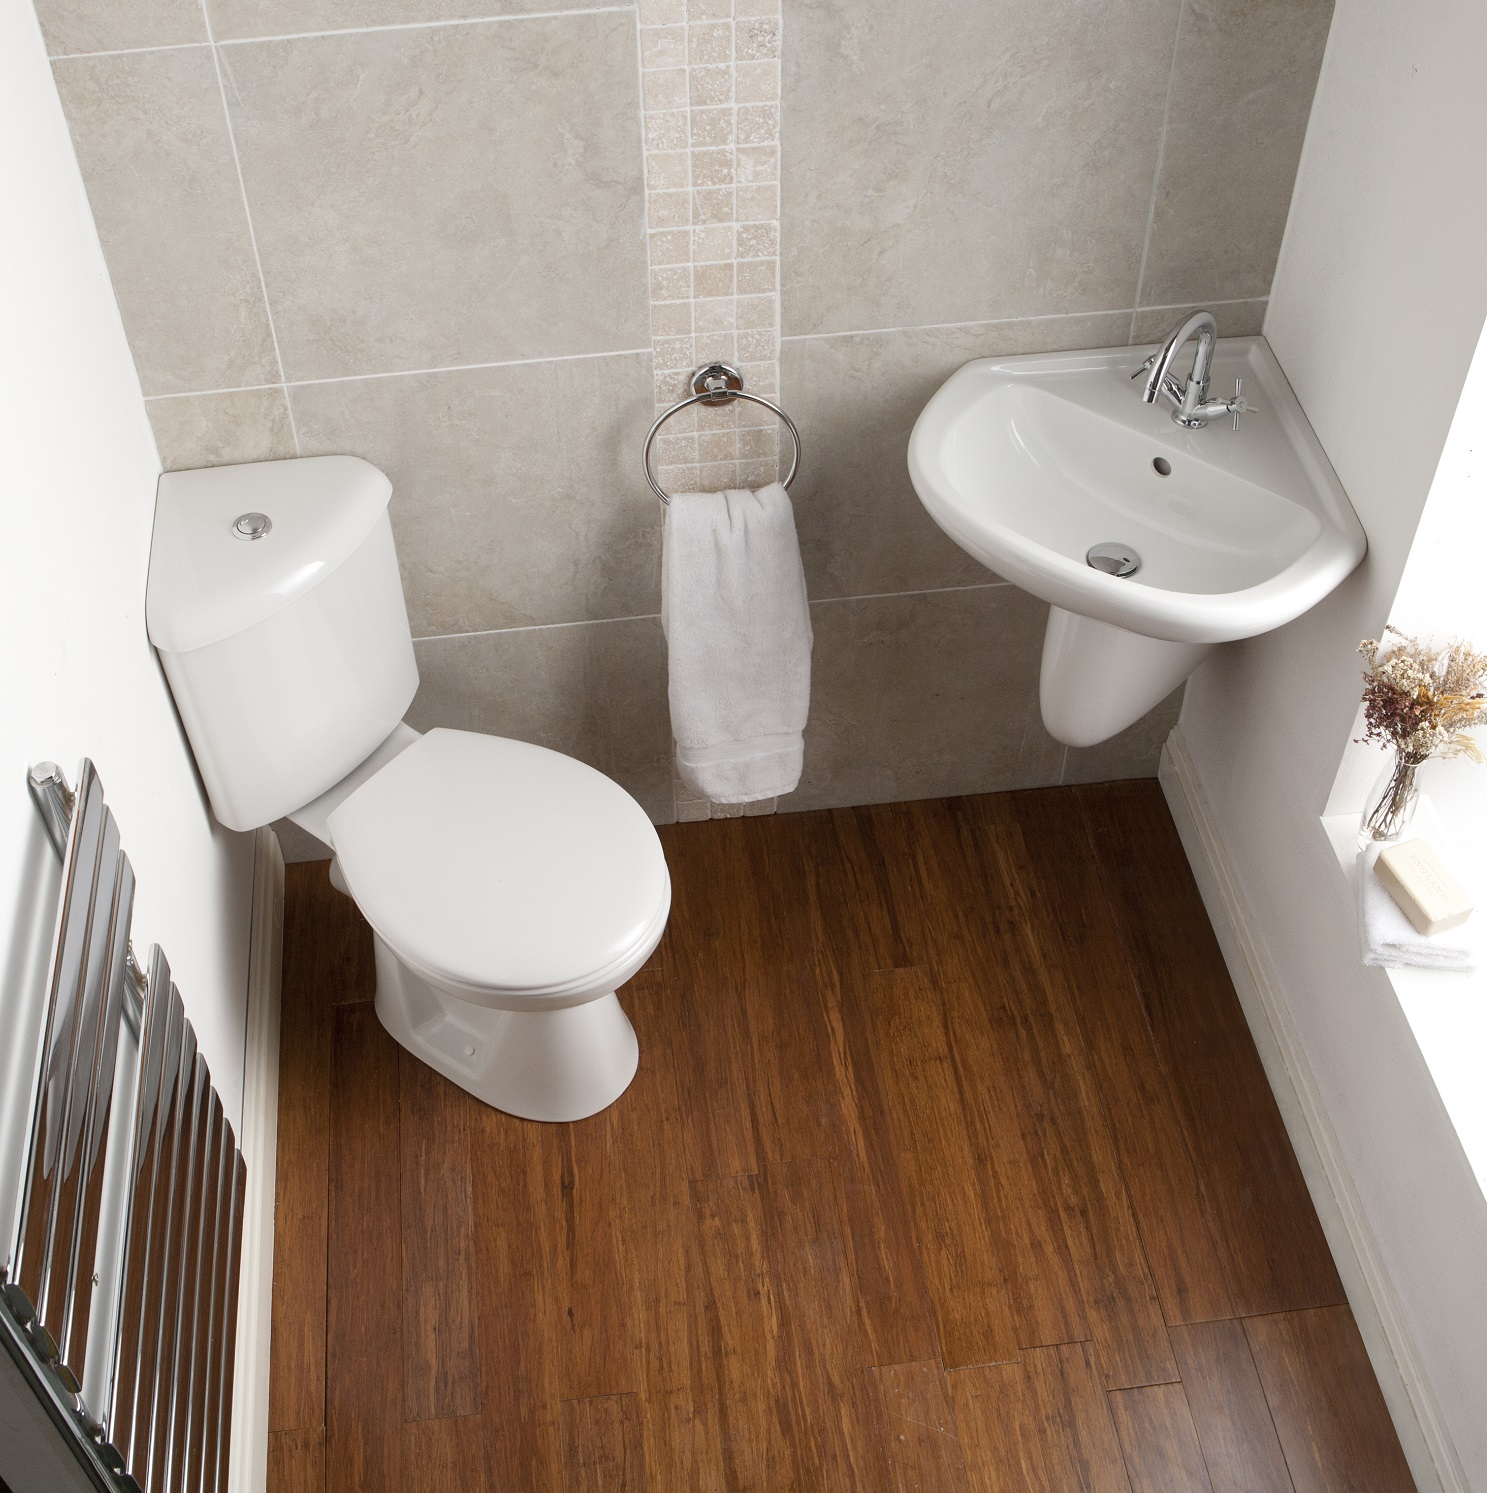 How To Choose A Toilet And Basin For A Cloakroom